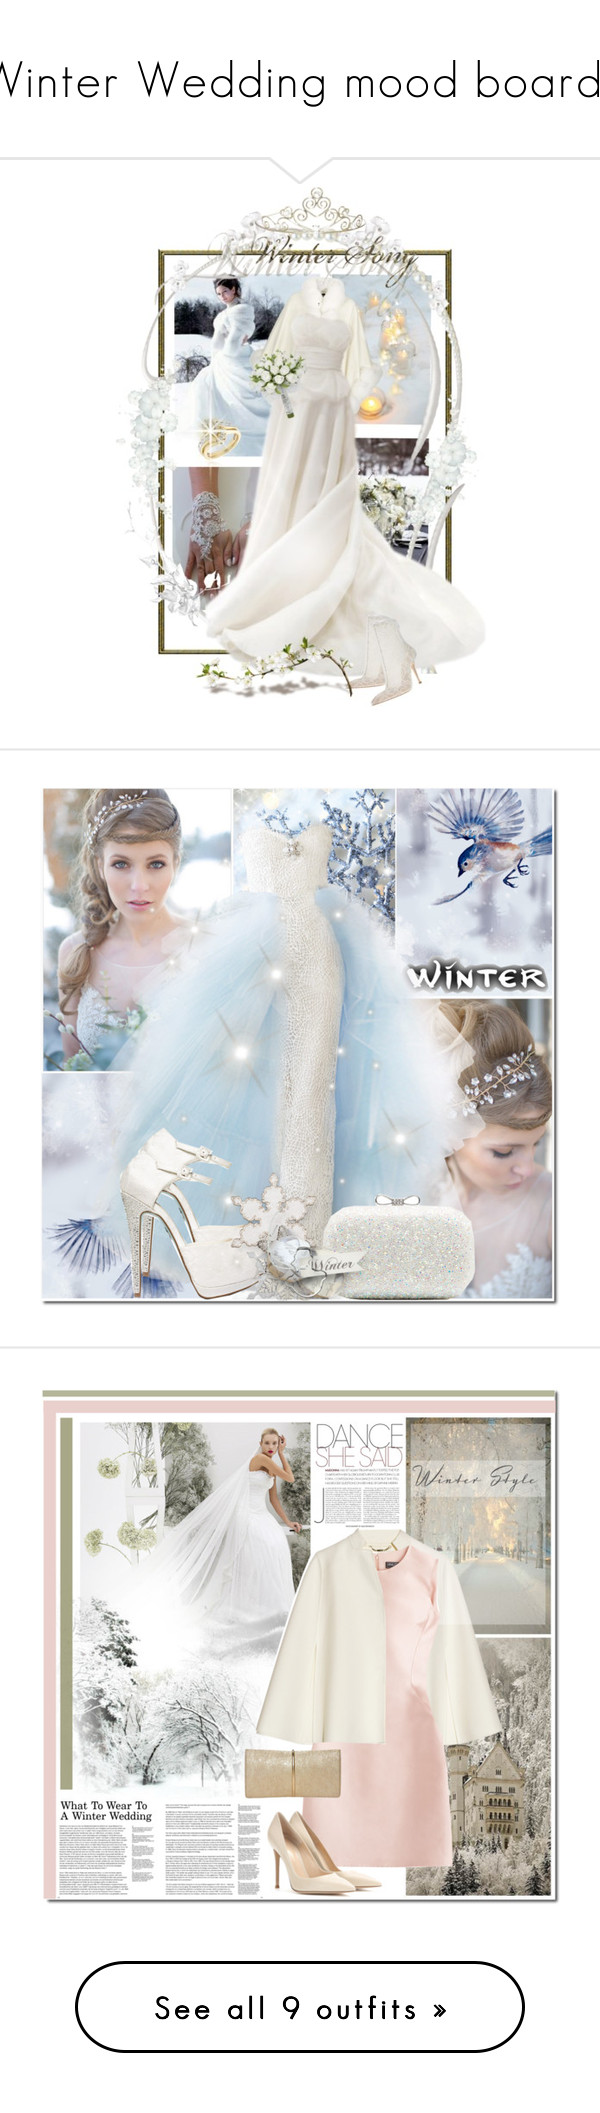 """""""Winter Wedding mood boards"""" by weddingdesignchic-com ❤ liked on Polyvore featuring Harrods, Reeds Jewelers, Oscar de la Renta, women's clothing, women, female, woman, misses, juniors and Forever New"""